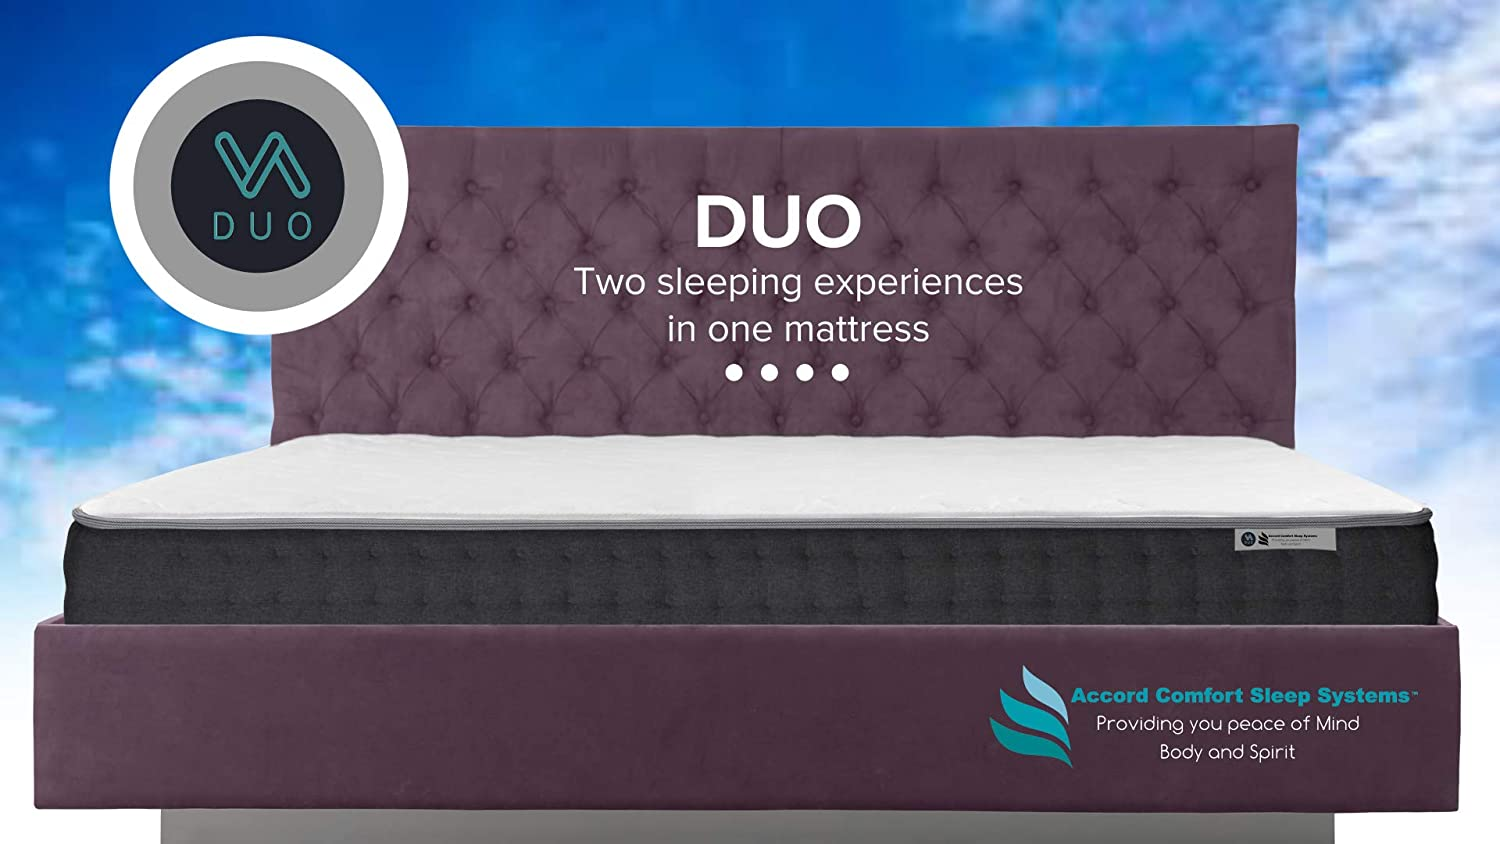 DUO Twin Double Sided Mattress 2 Beds in 1, Firm or Plush Outlast Cooling Fabic Full 10 Year Warranty, 60 Day Sleep Guarantee